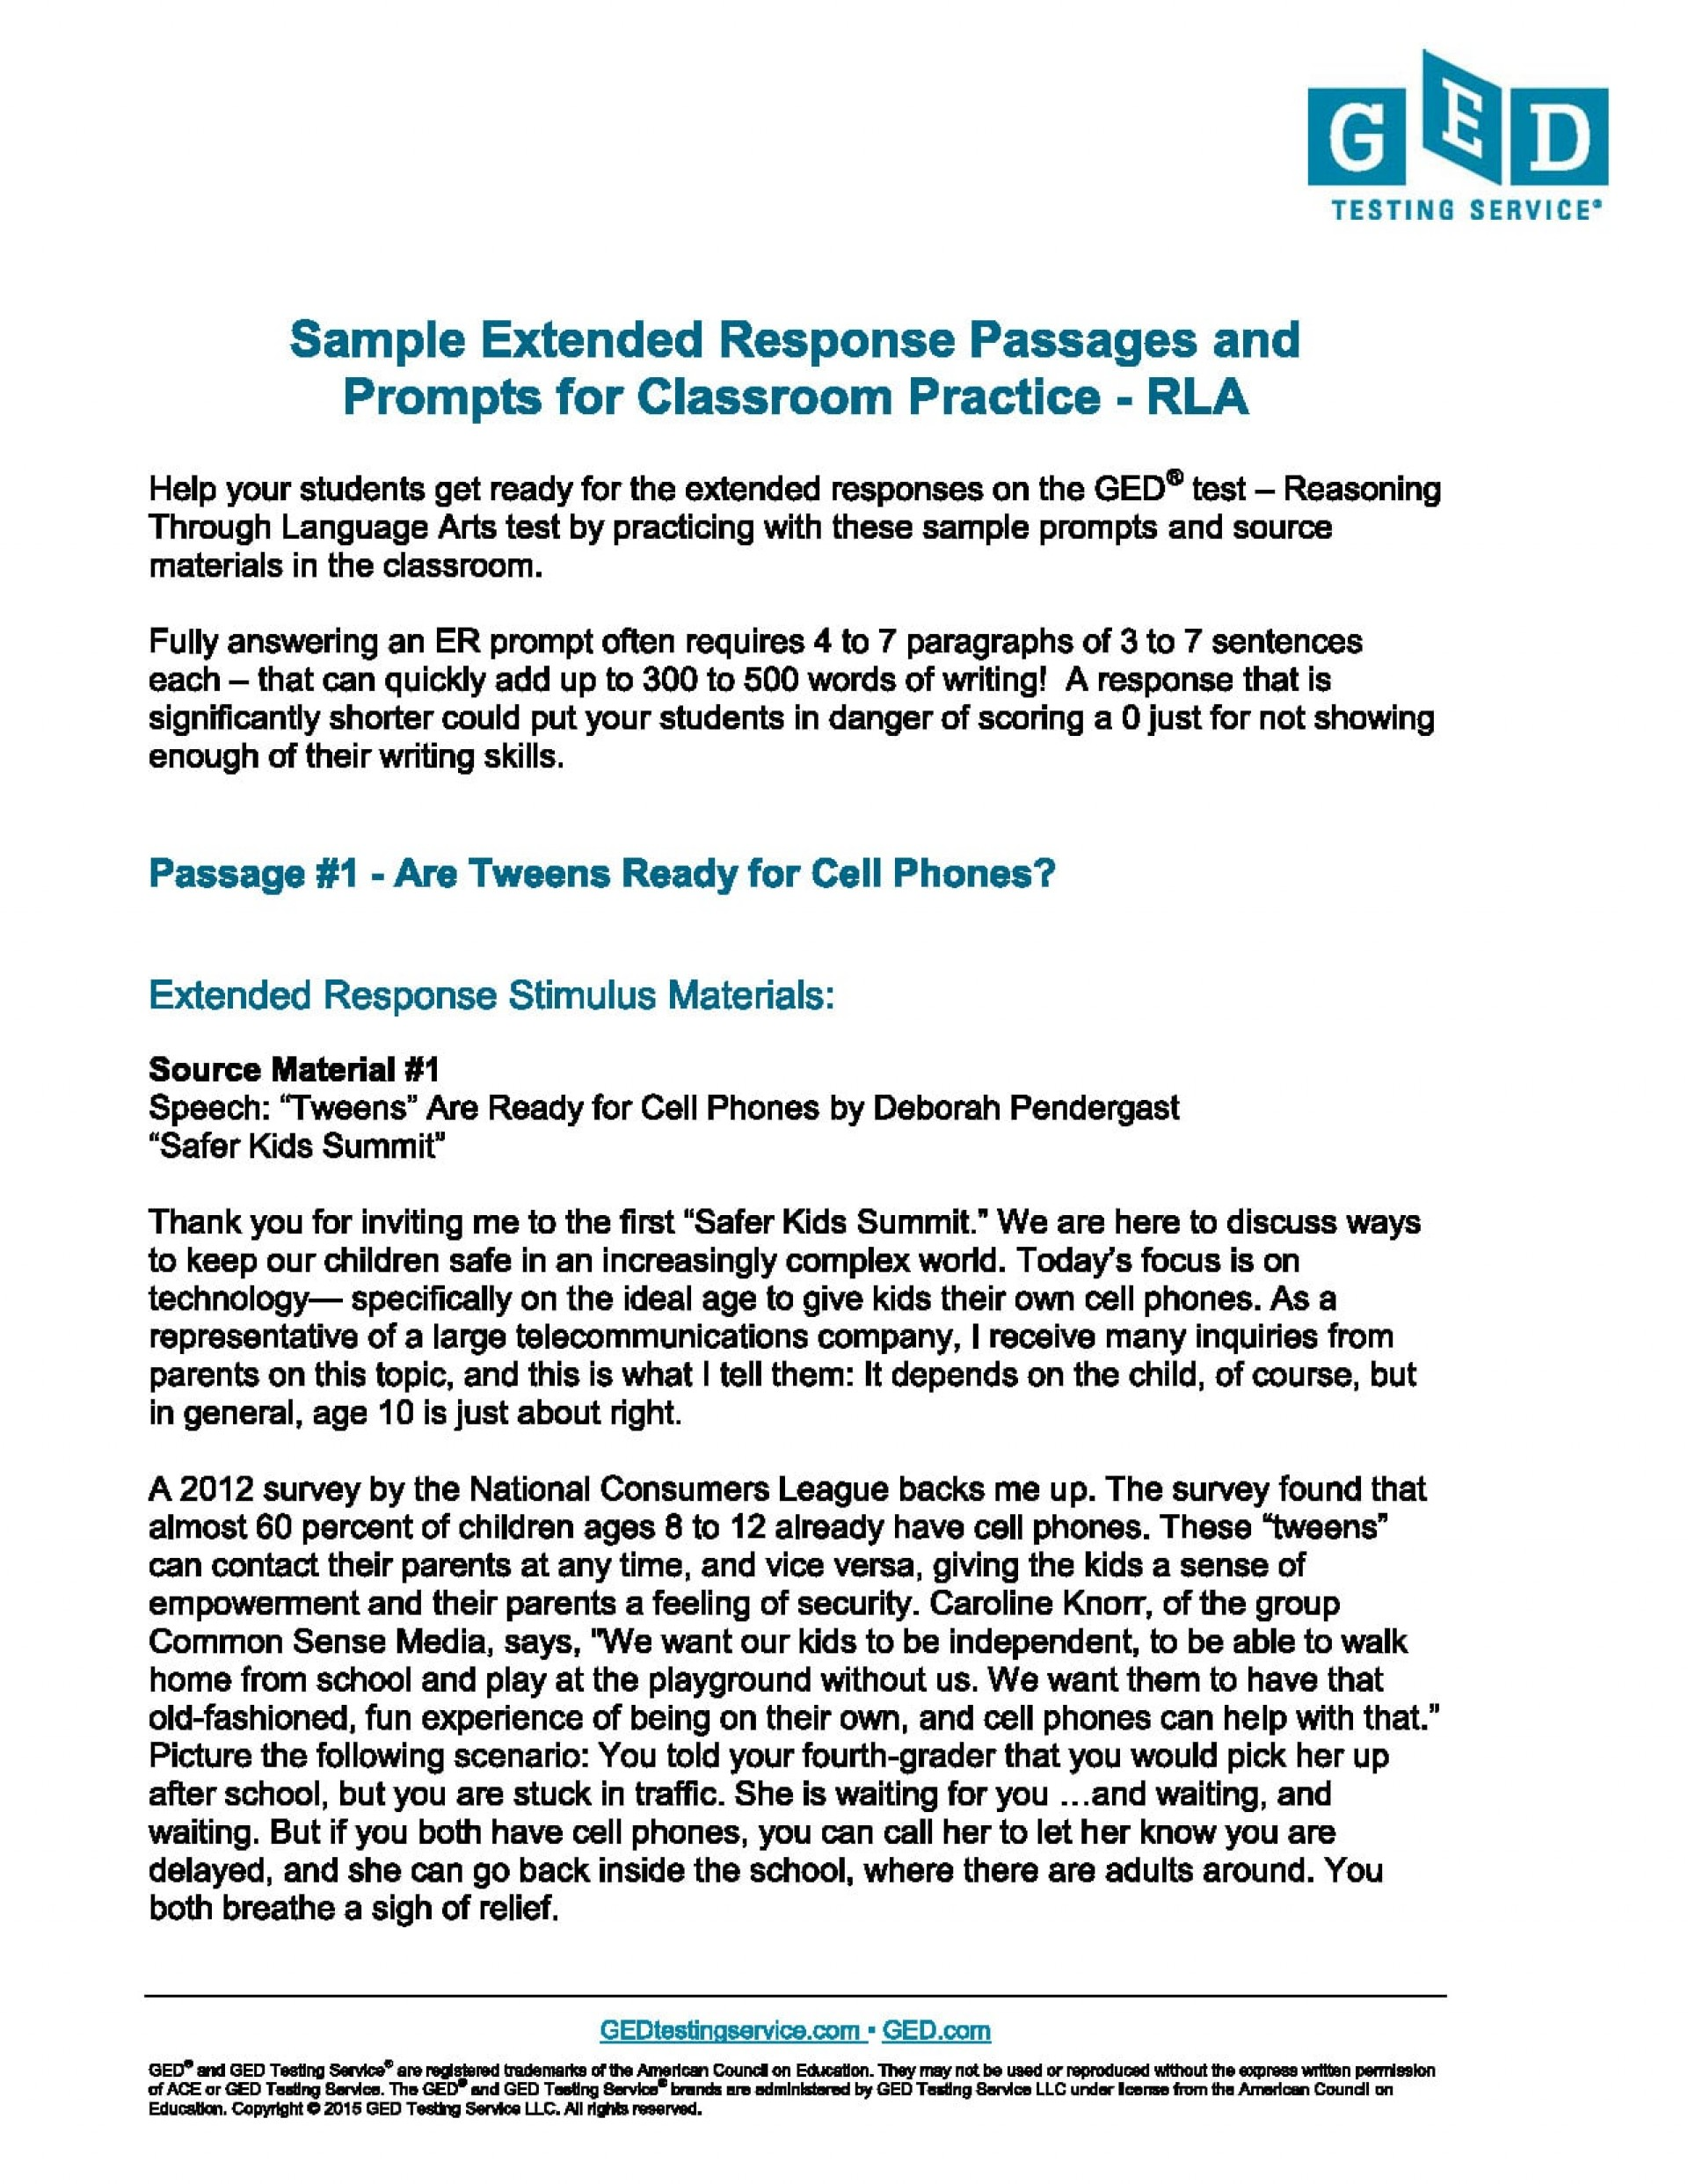 012 Word Essay Pages Homework Help Sites For College Students How To Practice Writing Gre Prompts Classroom Practic Your Gmat Ias Css Sat Online Ielts In English Dreaded 1000 1920